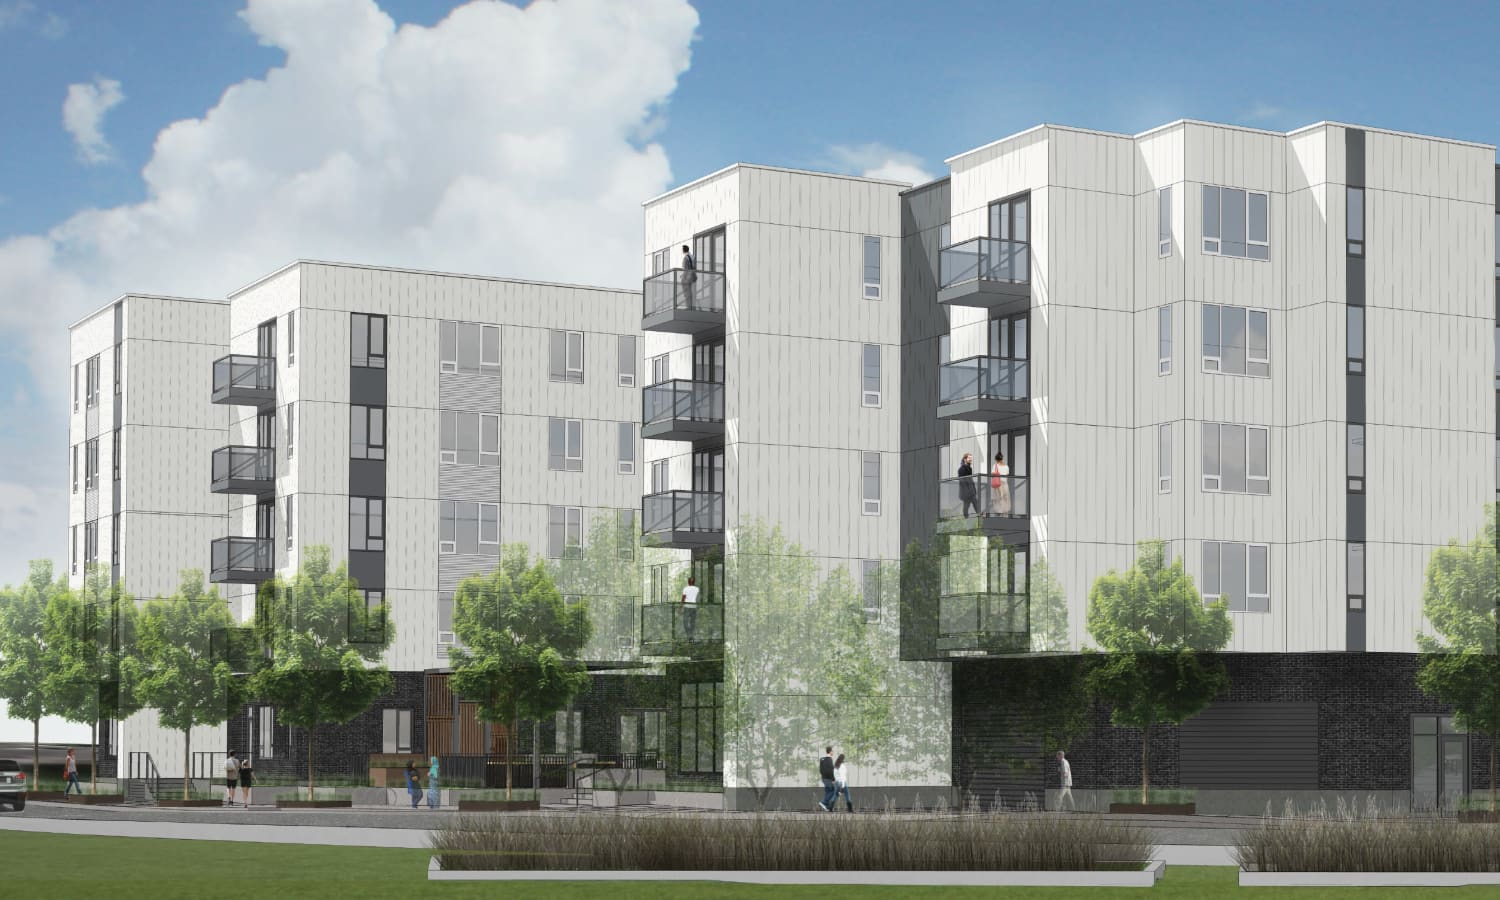 Exterior rendering of ground-level view at Grant Park Village - Quimby from the southeast in Portland, OR